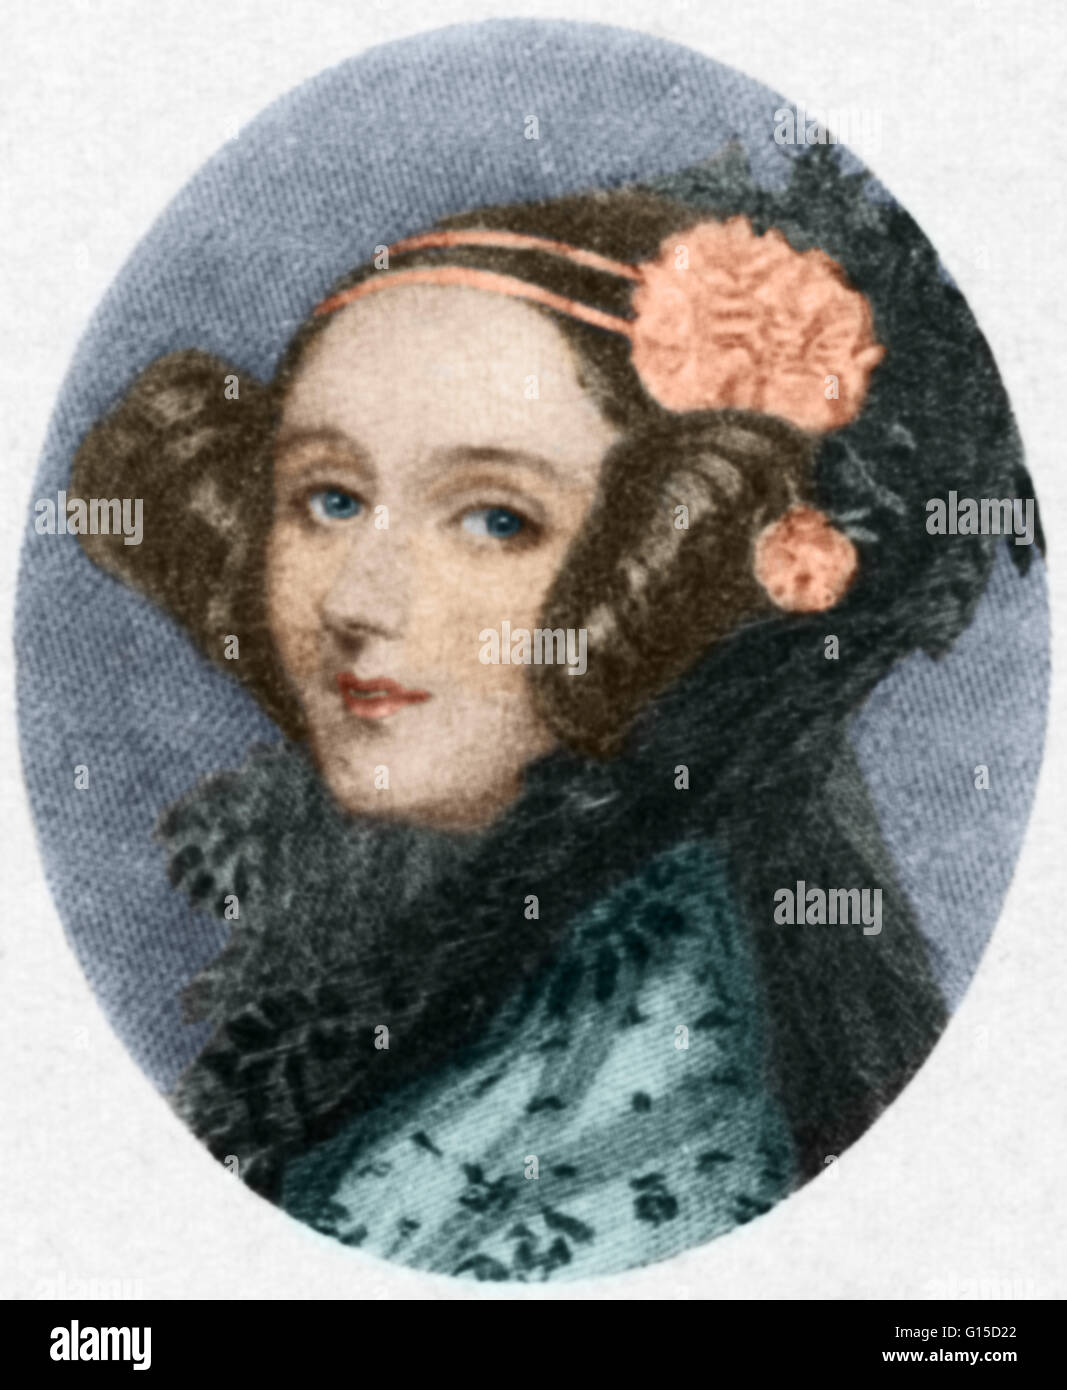 Augusta Ada King, Countess of Lovelace (December 10, 1815 - November 27, 1852), born Augusta Ada Byron and now commonly - Stock Image